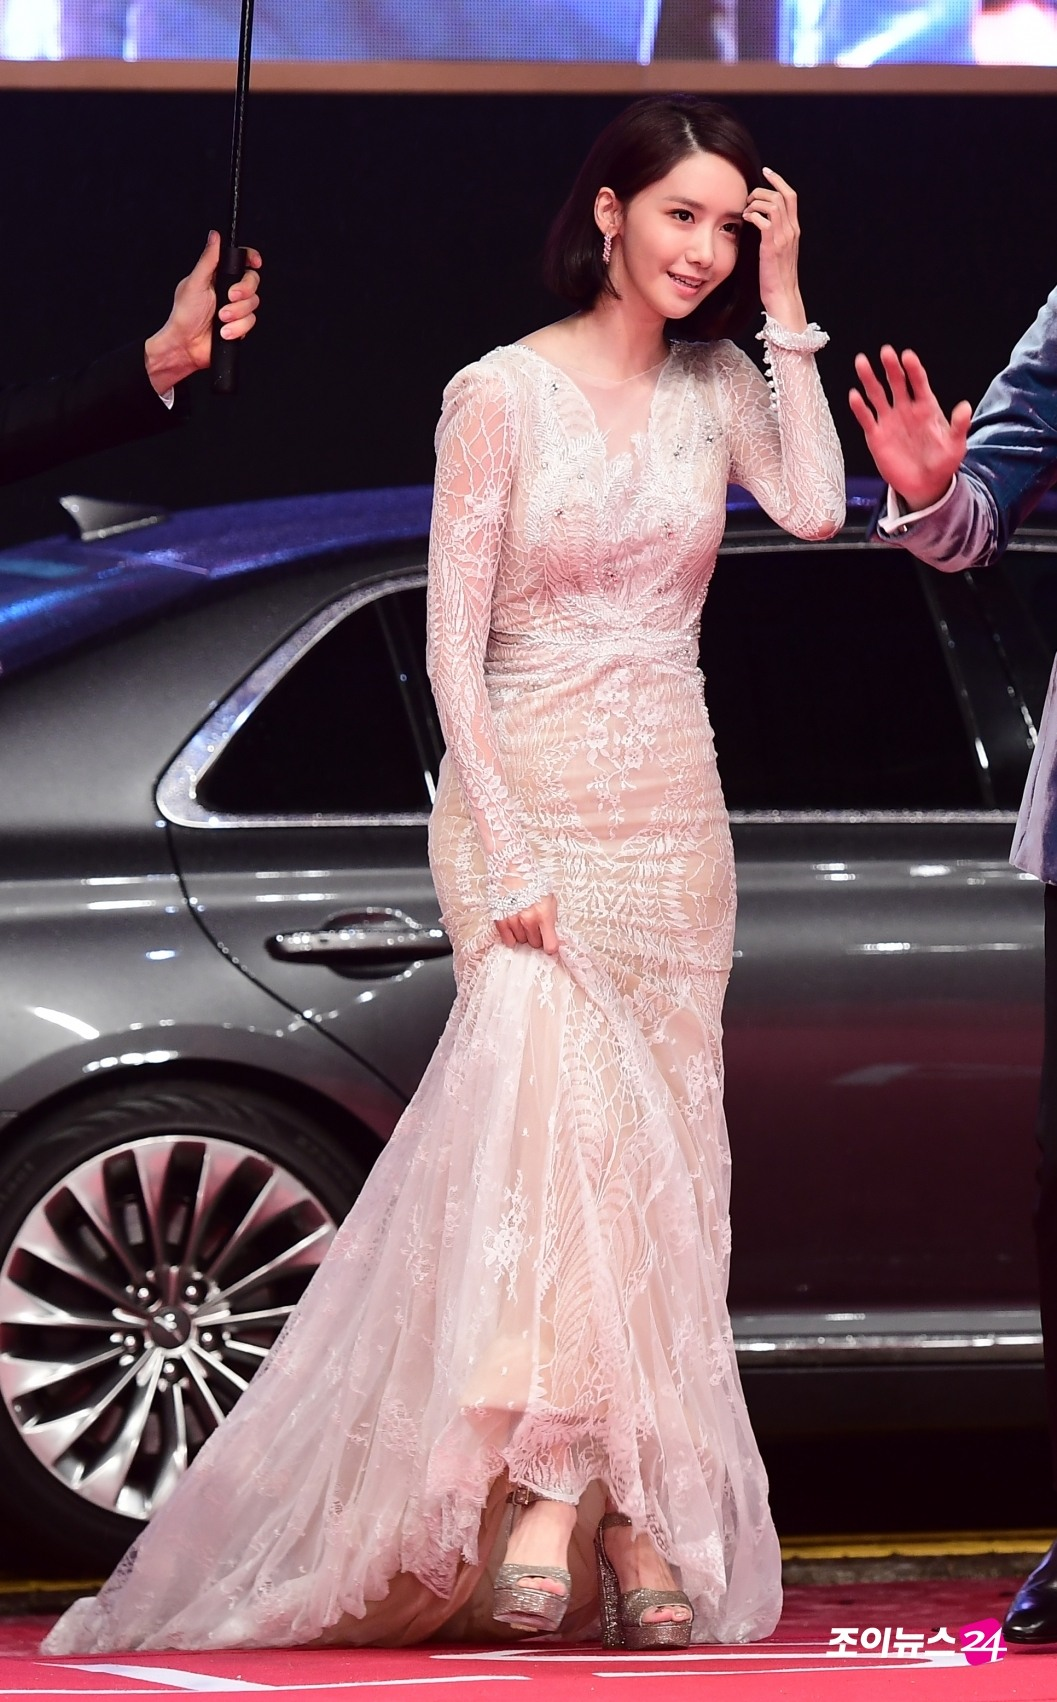 Yoona's New Red Carpet Dress Reveals A Clear Outline Of Her Butt, Everyone Stared — Koreaboo